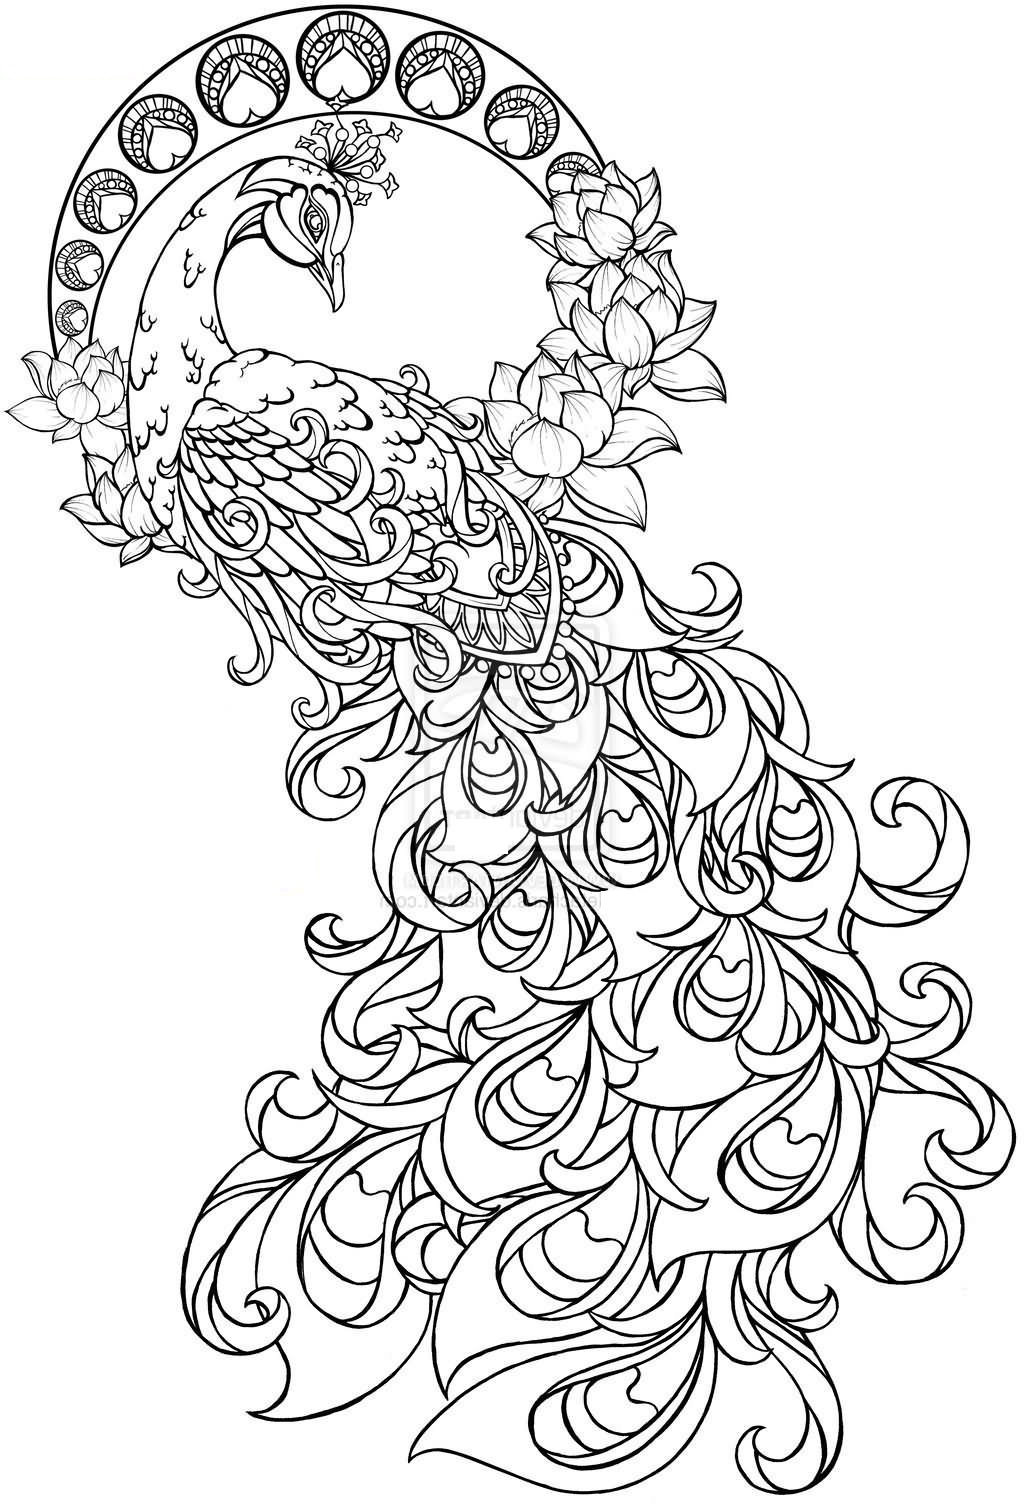 easy printable peacock coloring pages peacock drawing kids at getdrawingscom free for coloring pages easy peacock printable